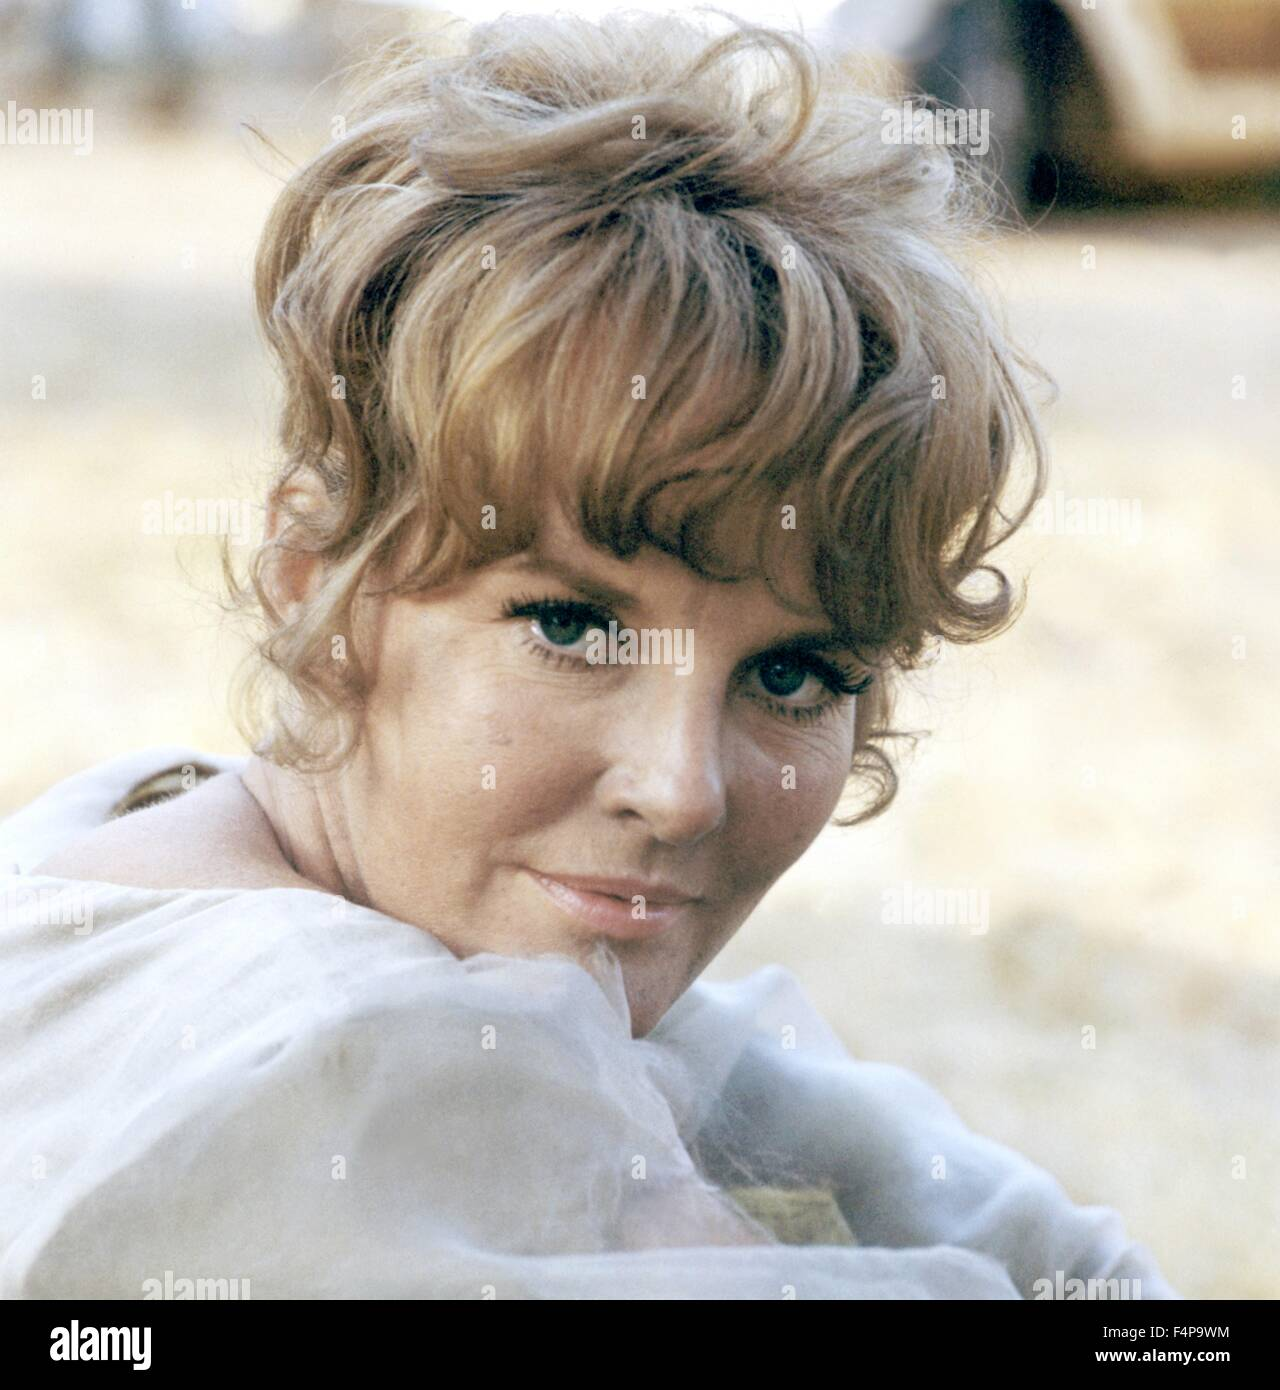 Petula Clark / Finian's Rainbow 1968 directed by Francis Ford Coppola - Stock Image